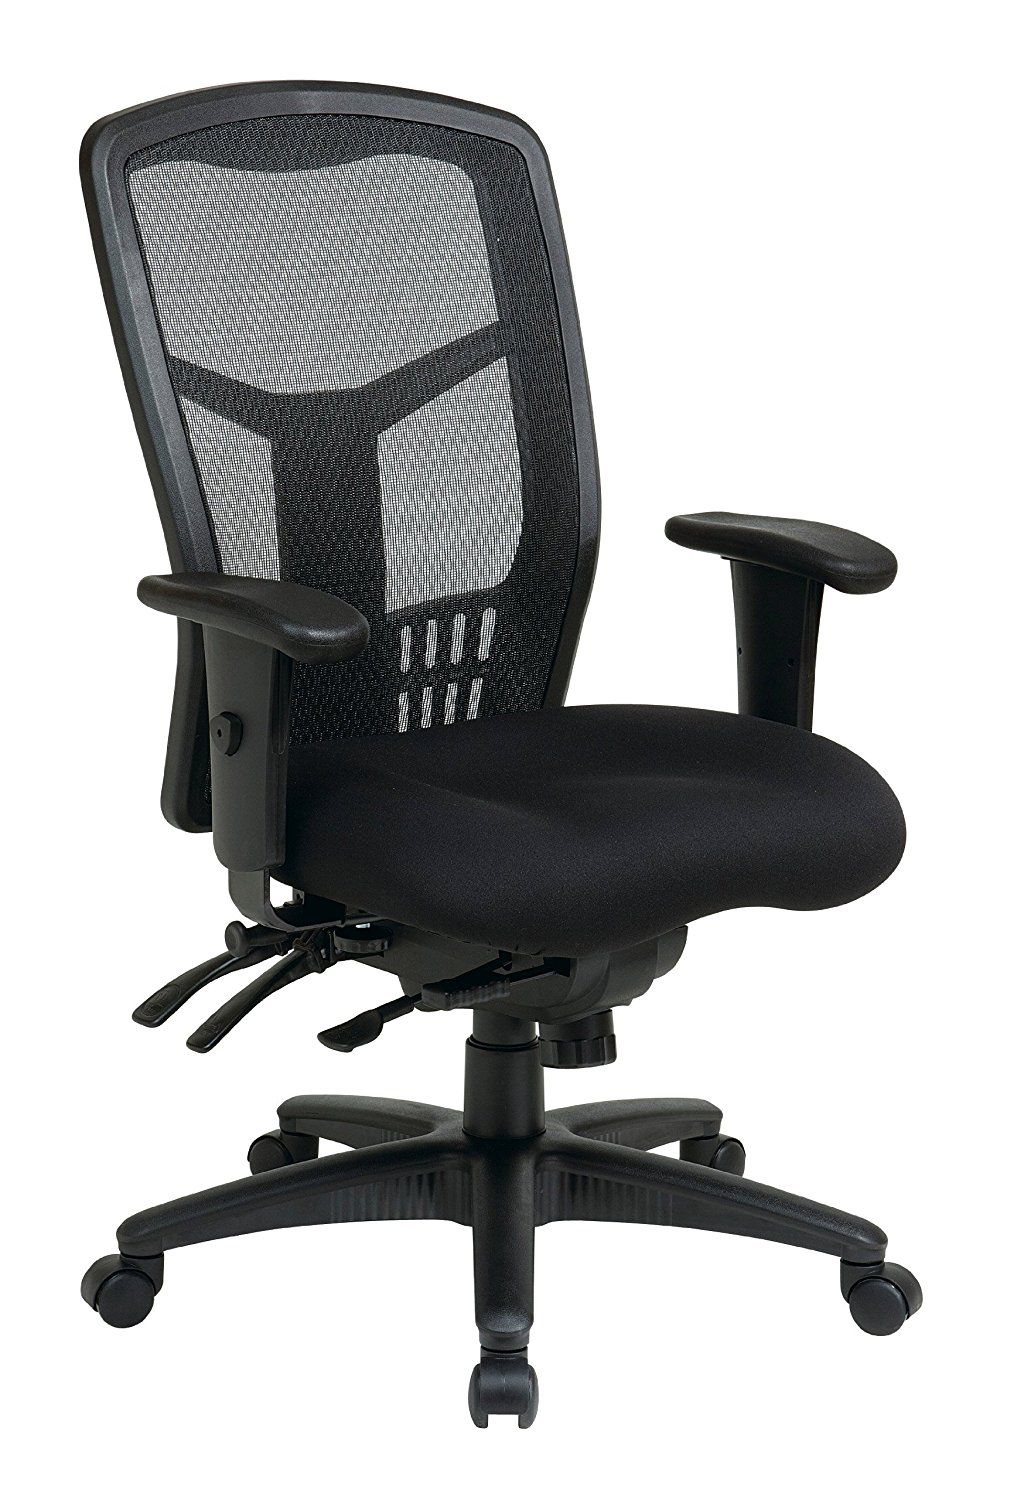 Ergonomic Office Chairs The 7 Best Ergonomic Office Chairs To Buy In 2018